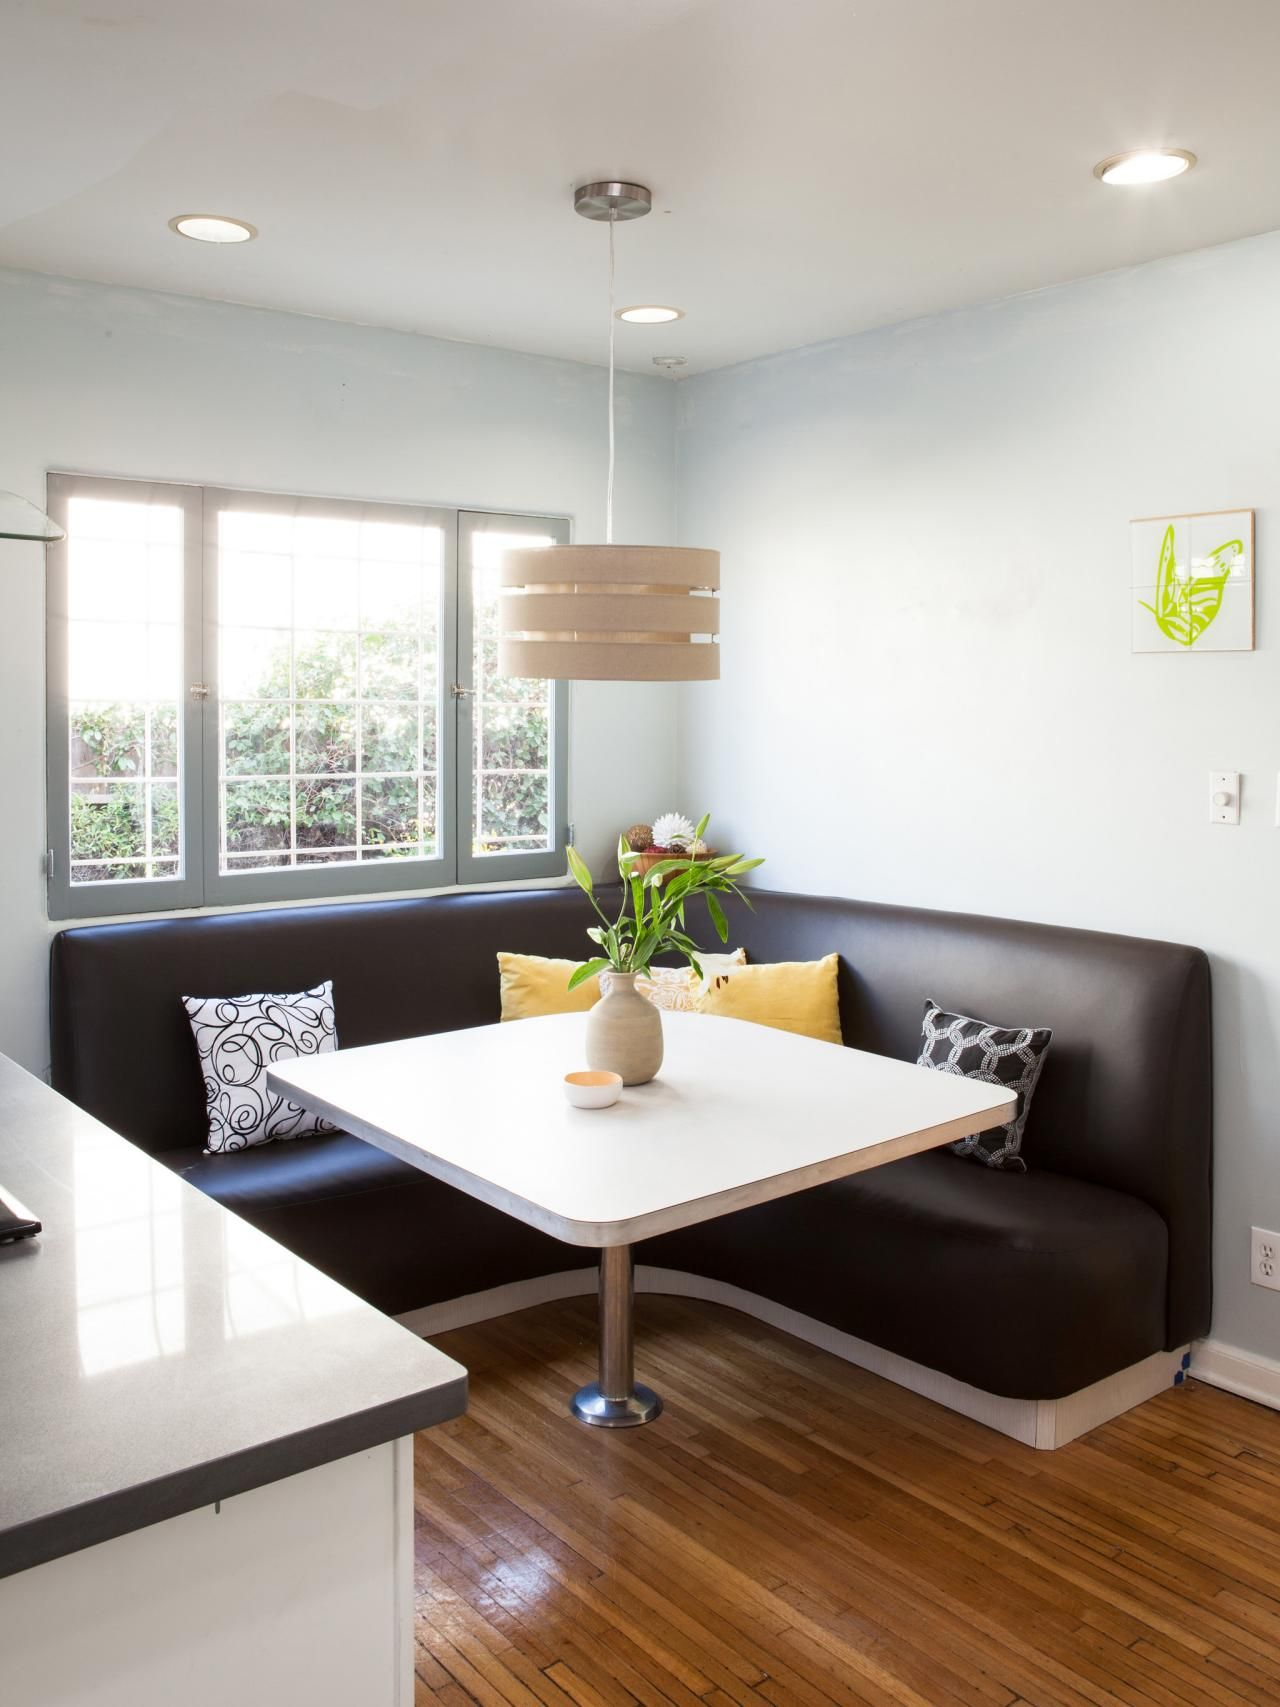 Team Drew Transformed This Breakfast Nook With A Fresh